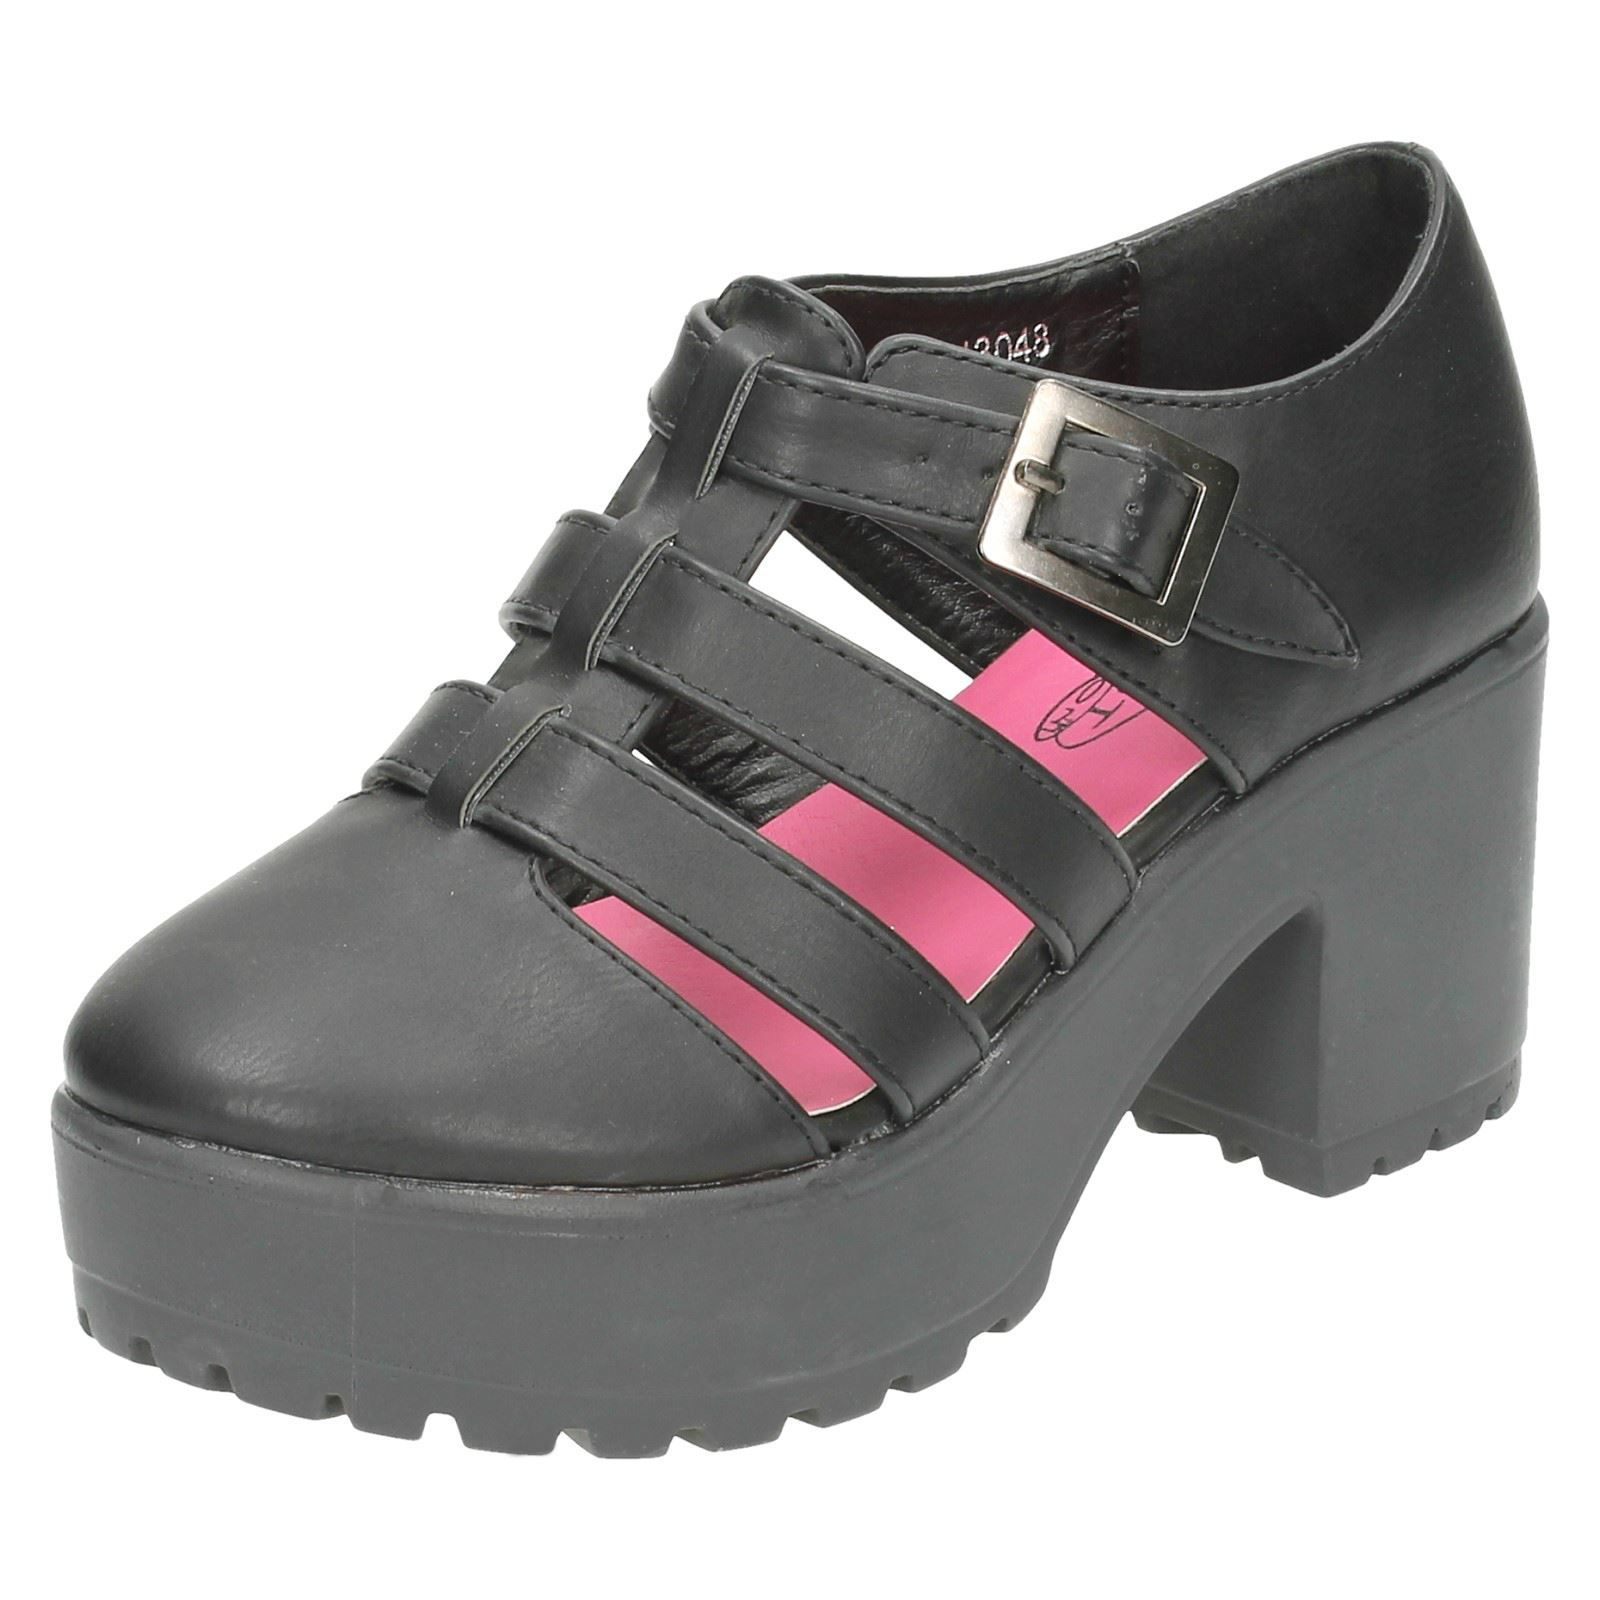 Girls Spot On High Platform Strappy Shoes - H3048